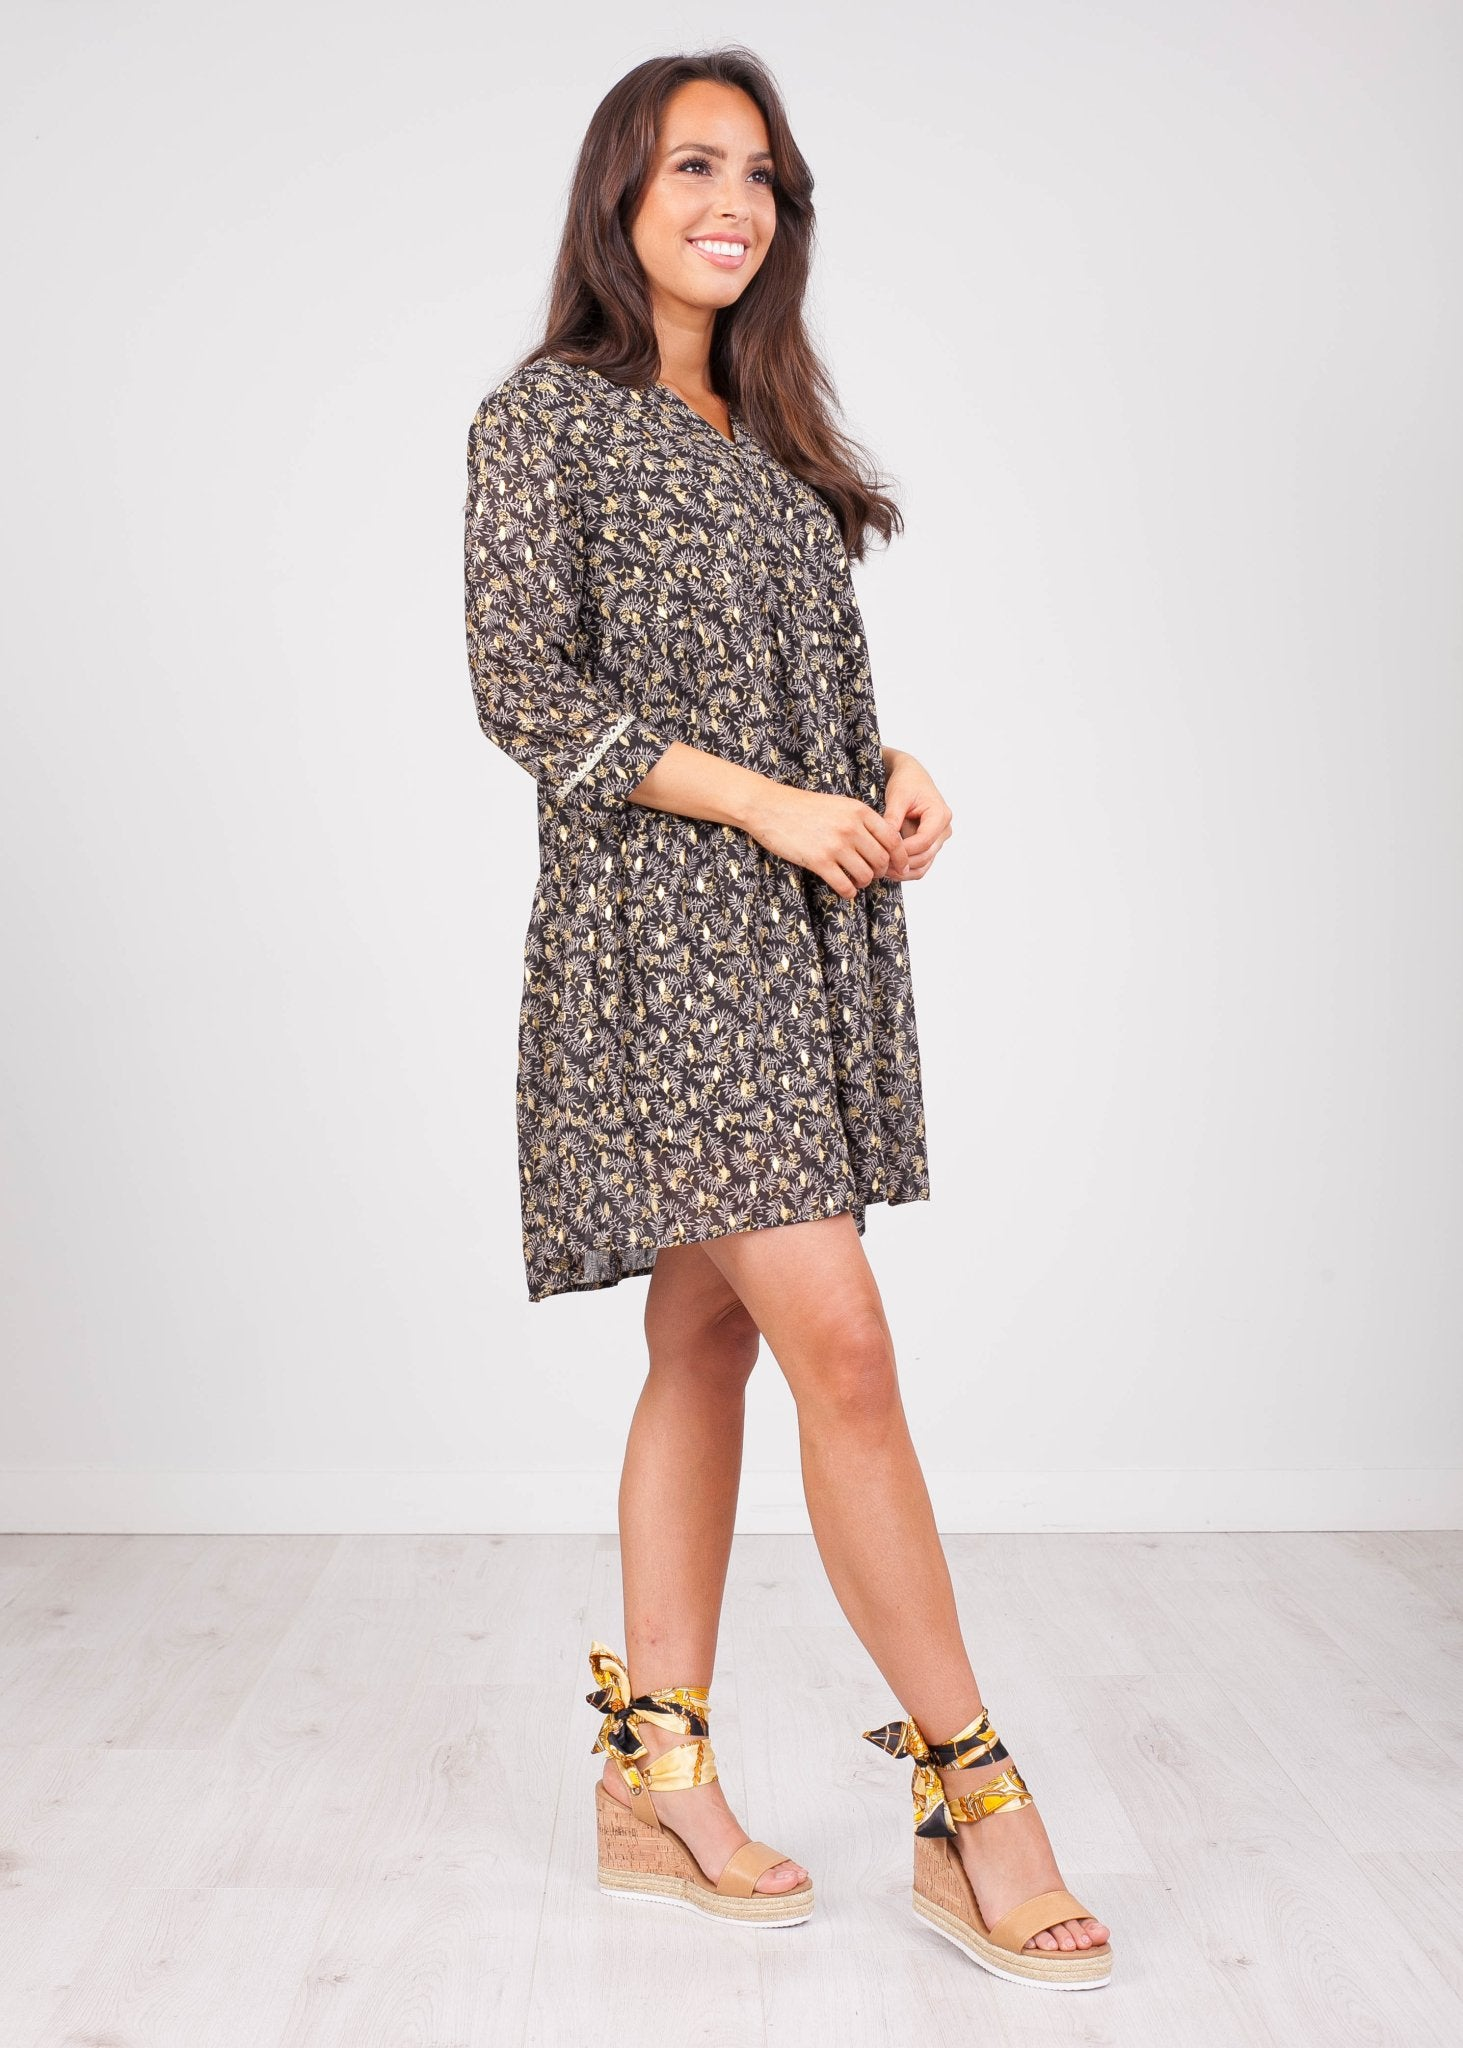 Cherie Black Leaf Printed Dress - The Walk in Wardrobe